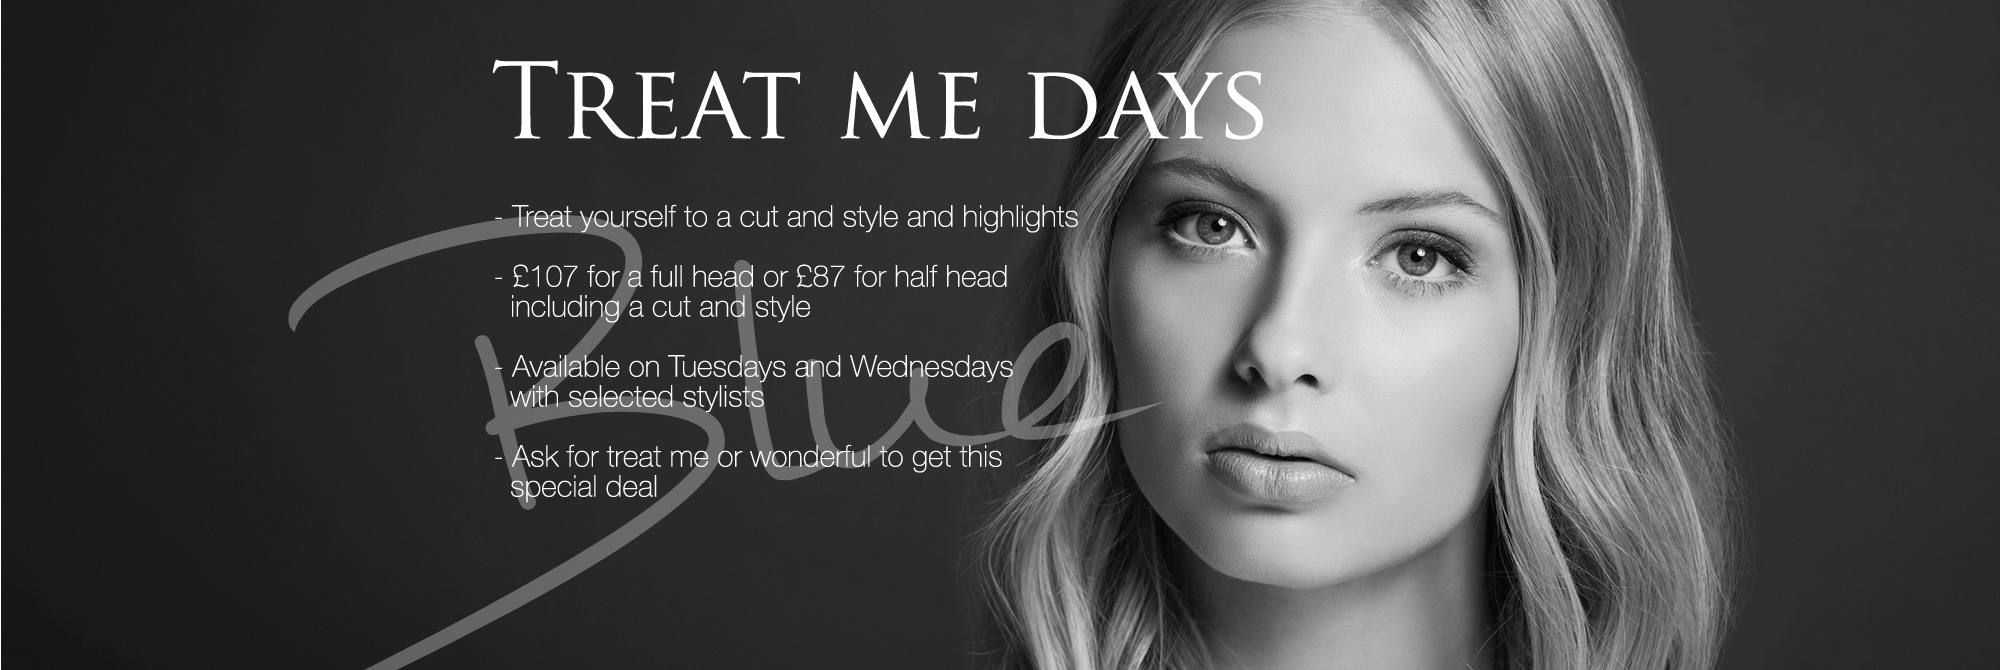 homepage-treat-me-days2